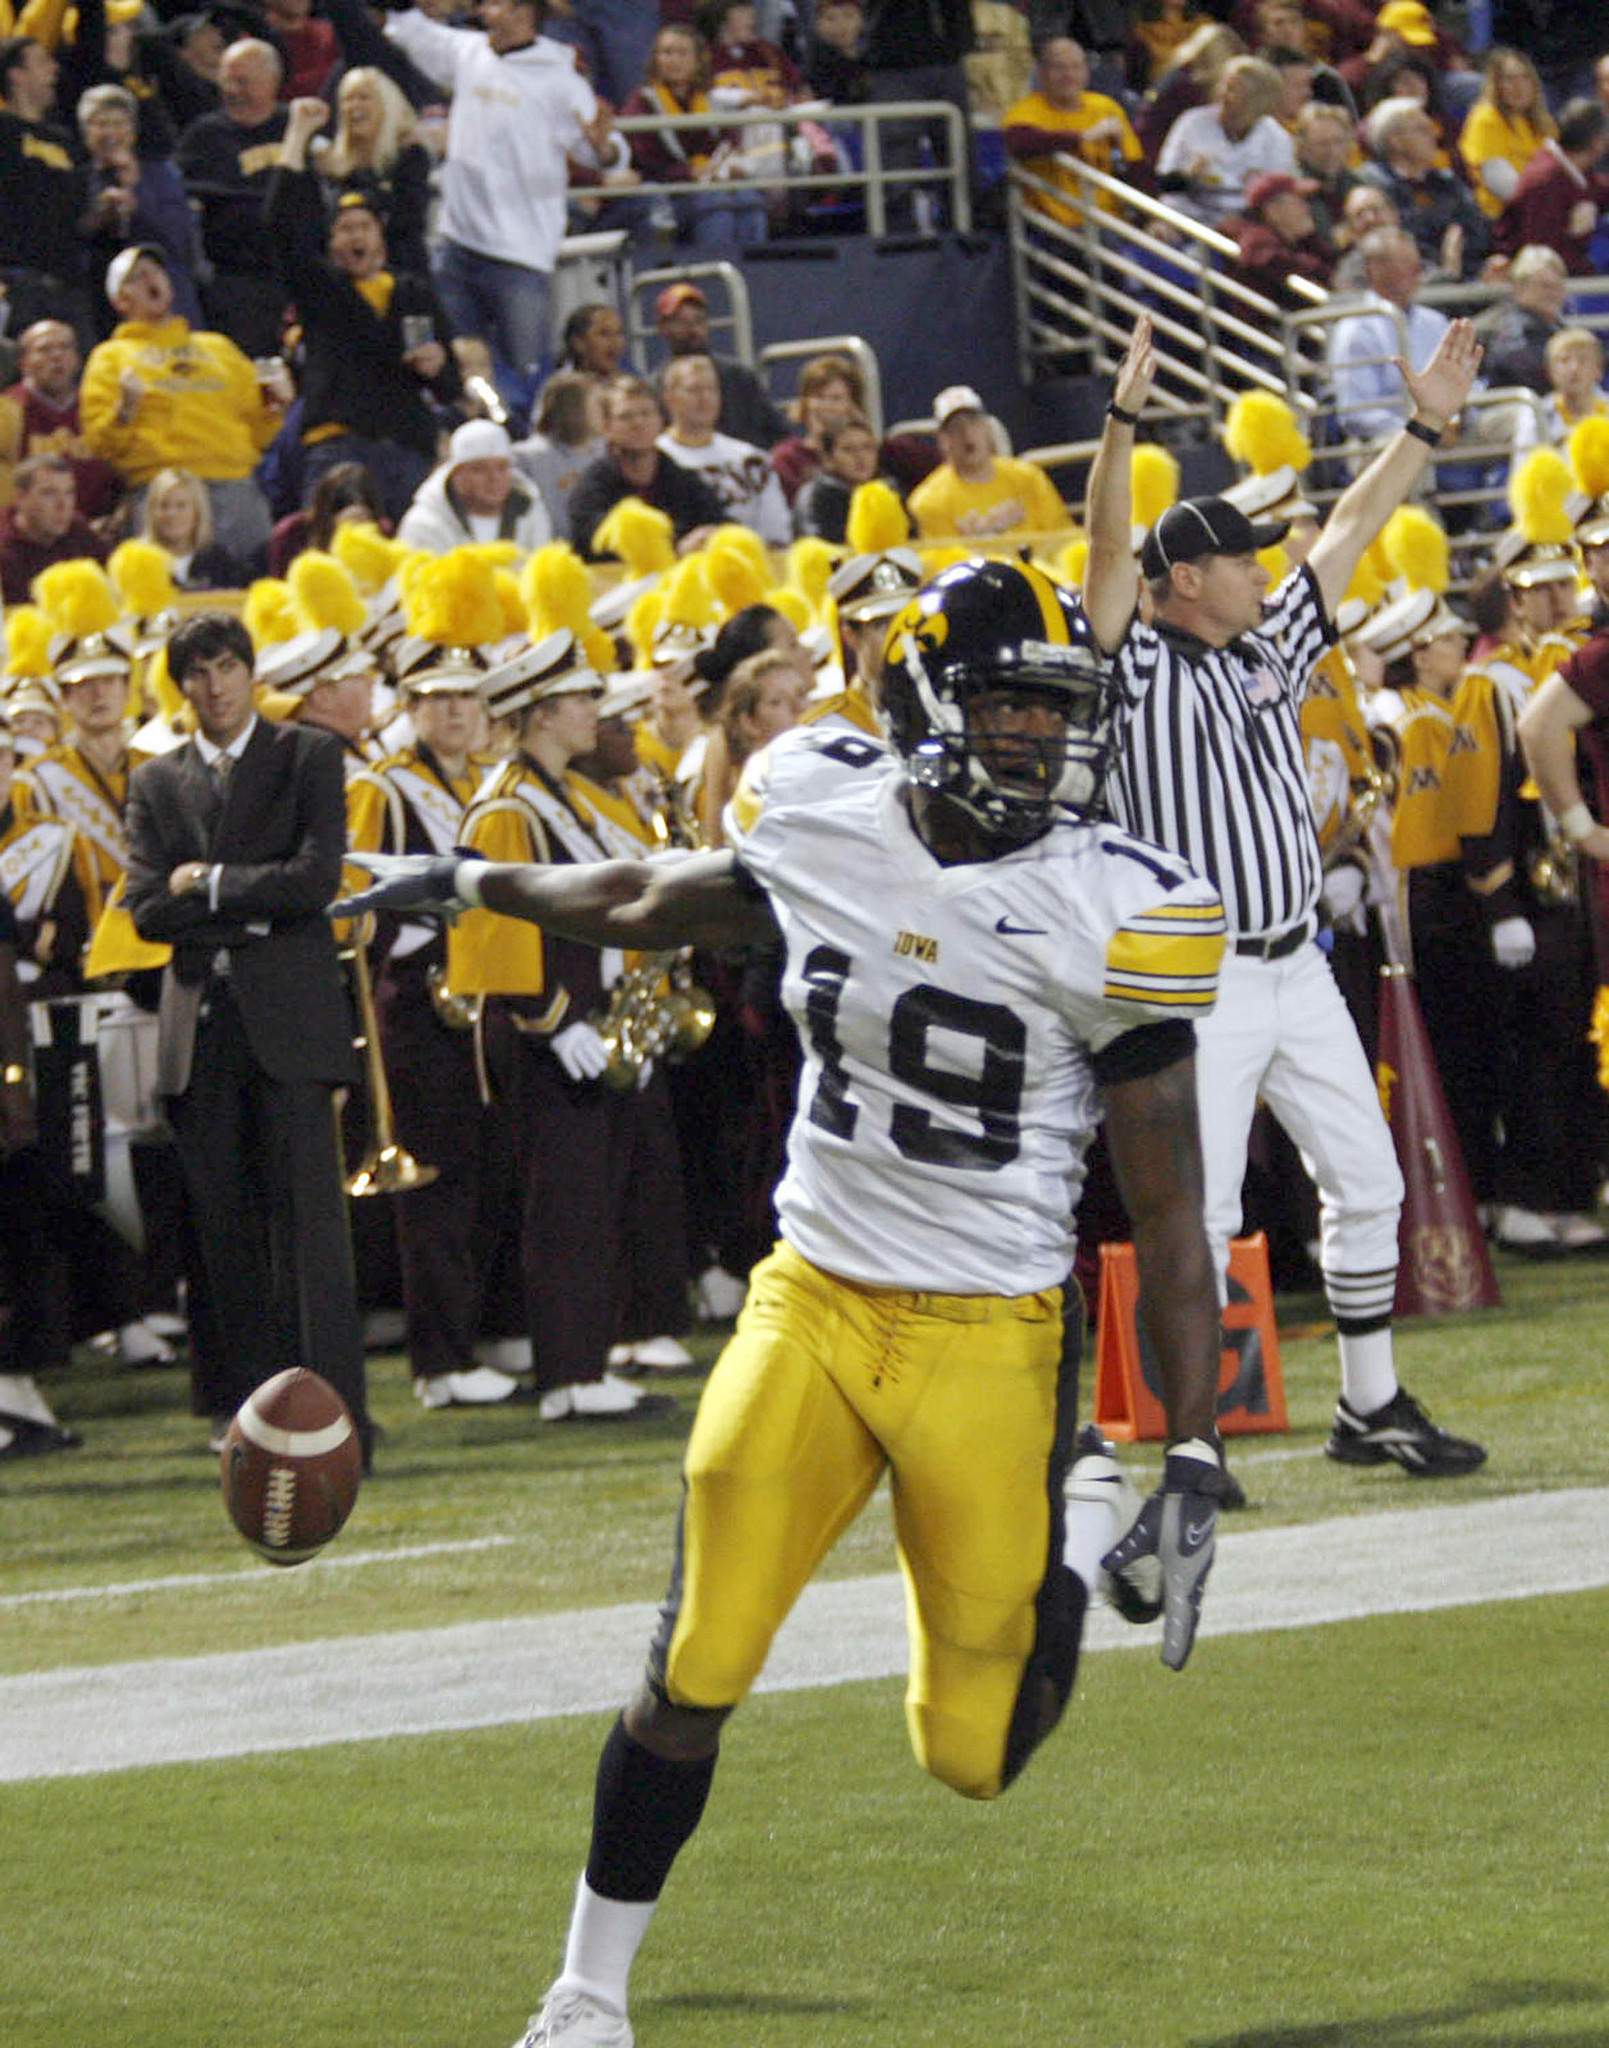 Iowa's Amari Spievey, a Middletown native, rolled into the end zone after intercepting a Minnesota pass and returning it 56-yards for a touchdown in Minneapolis on Nov. 22, 2008.